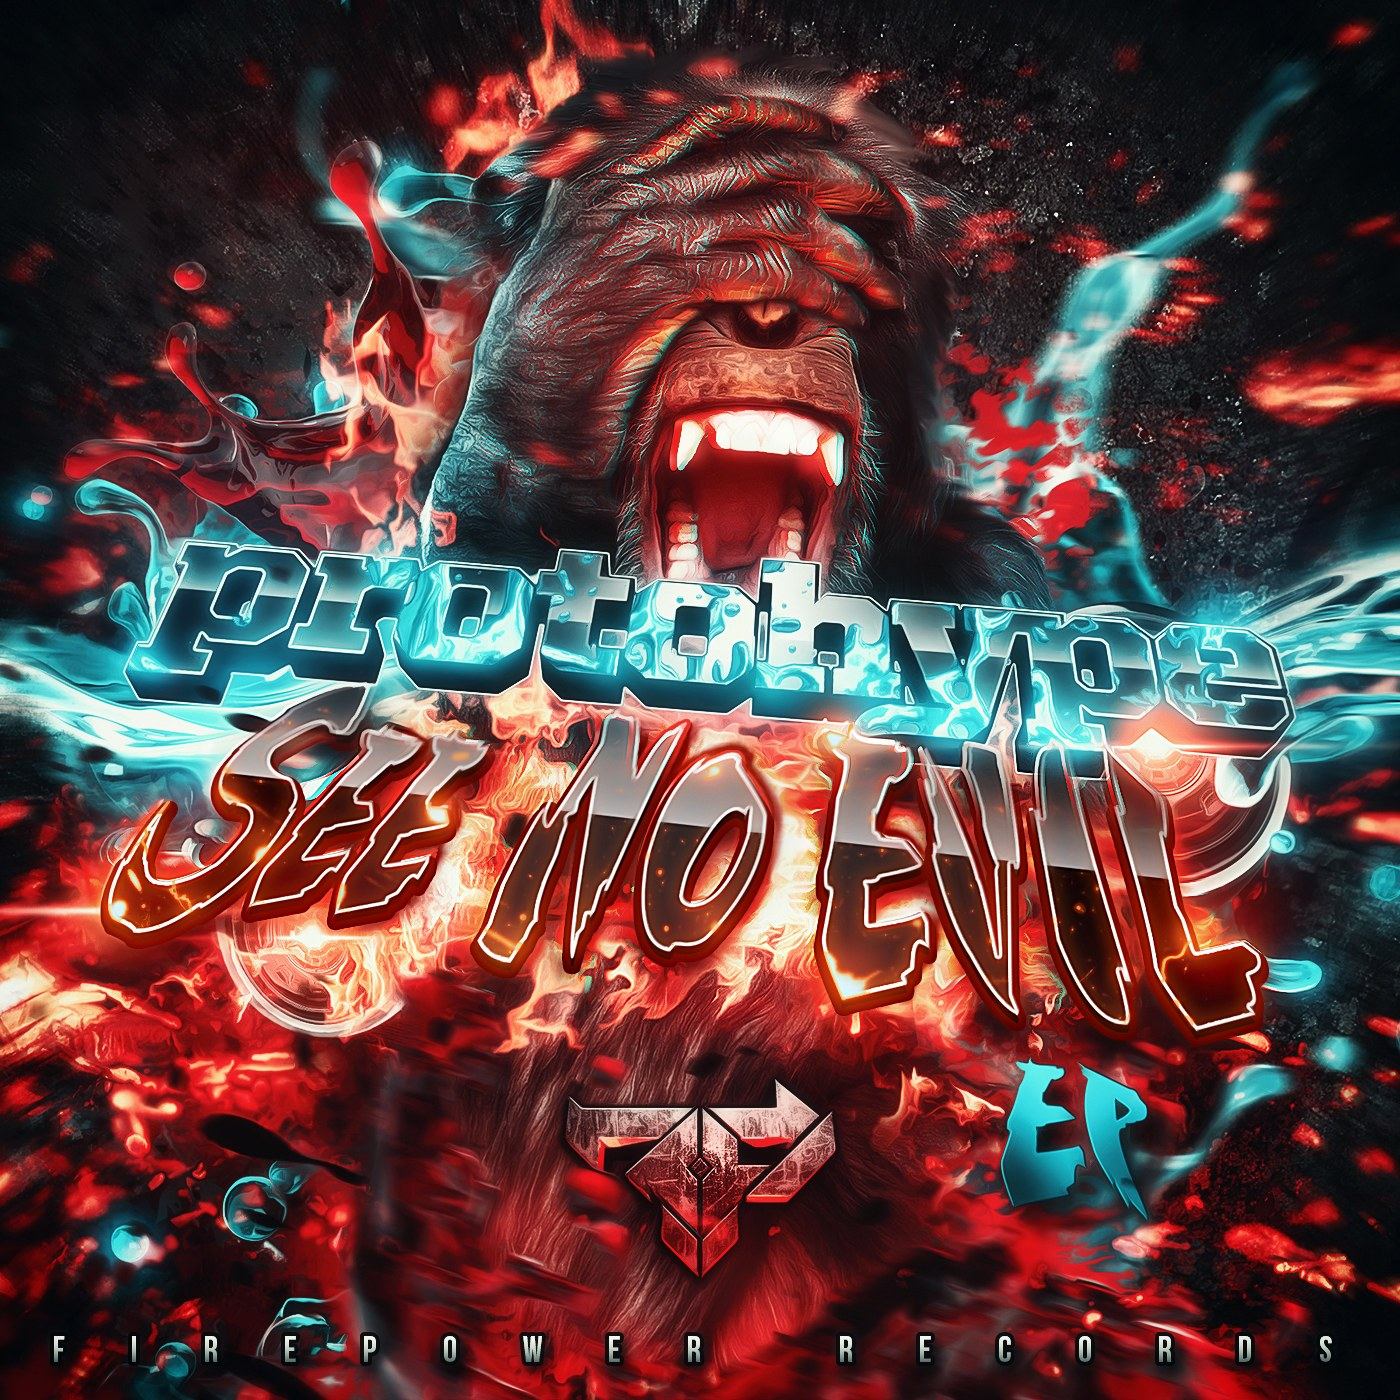 protohype see no evil ep art 1400x1400 Protohype interview